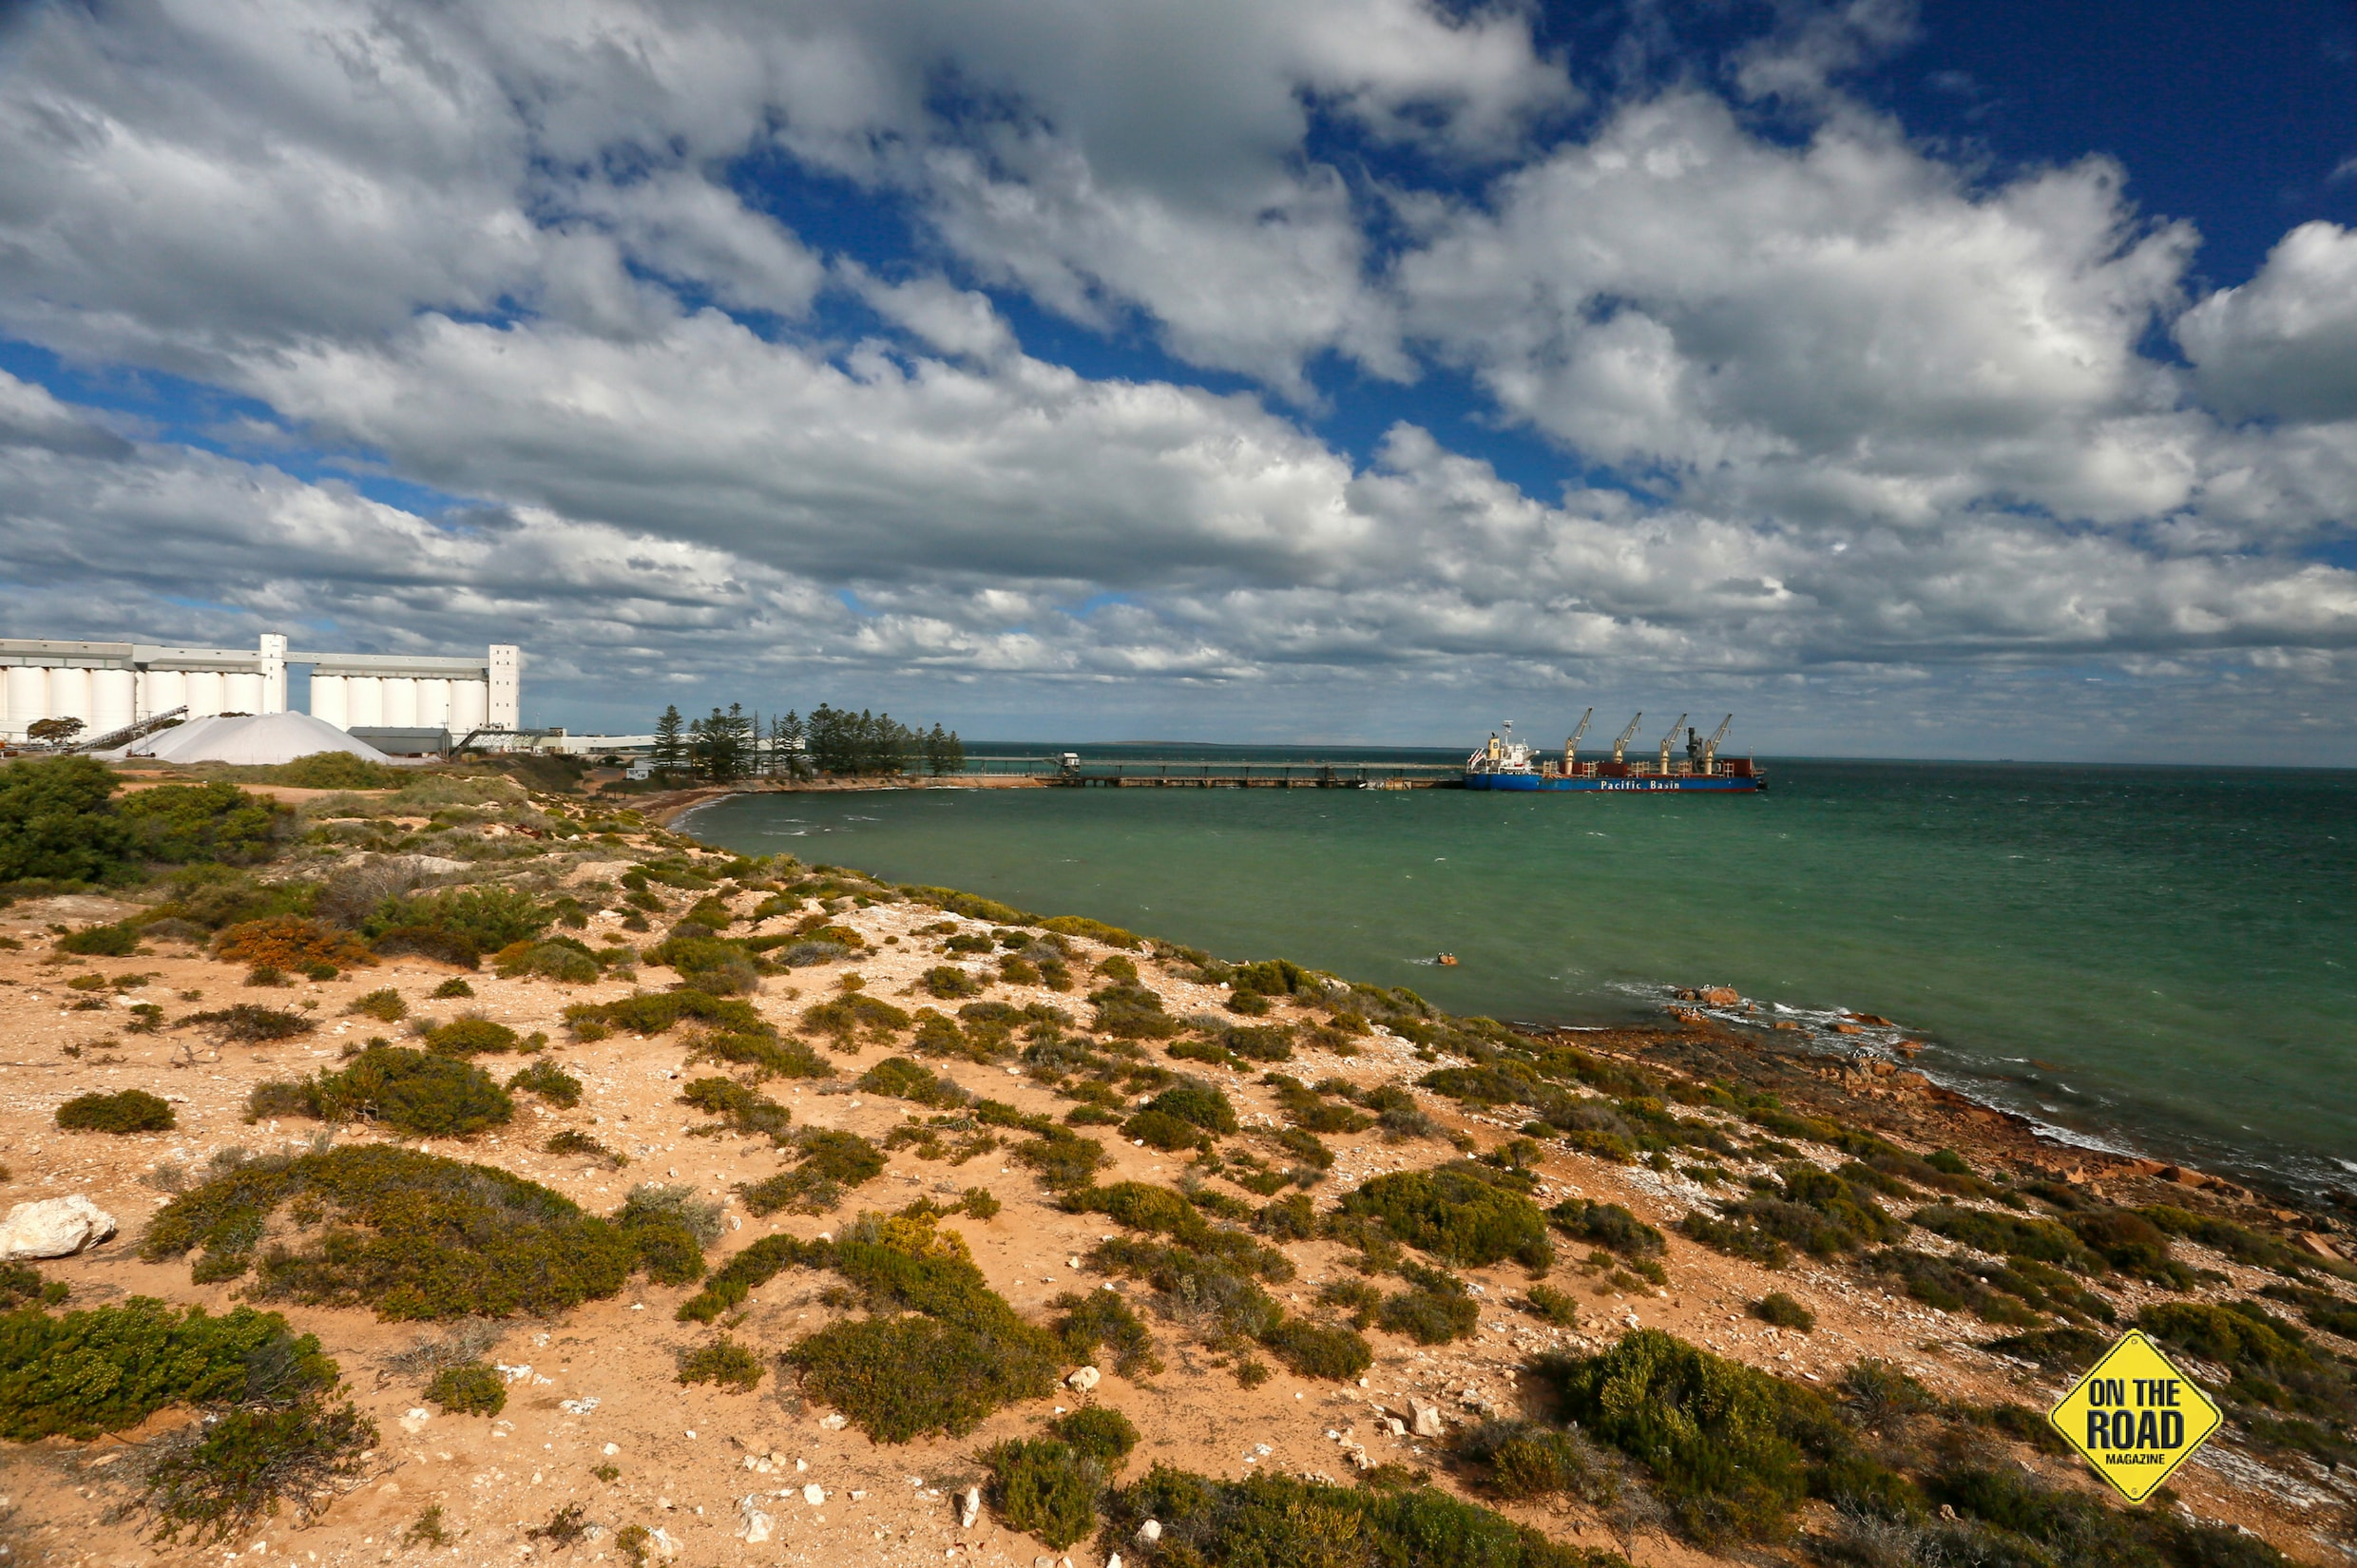 The commercial jetty and port facility at Cape Thevenard, Ceduna